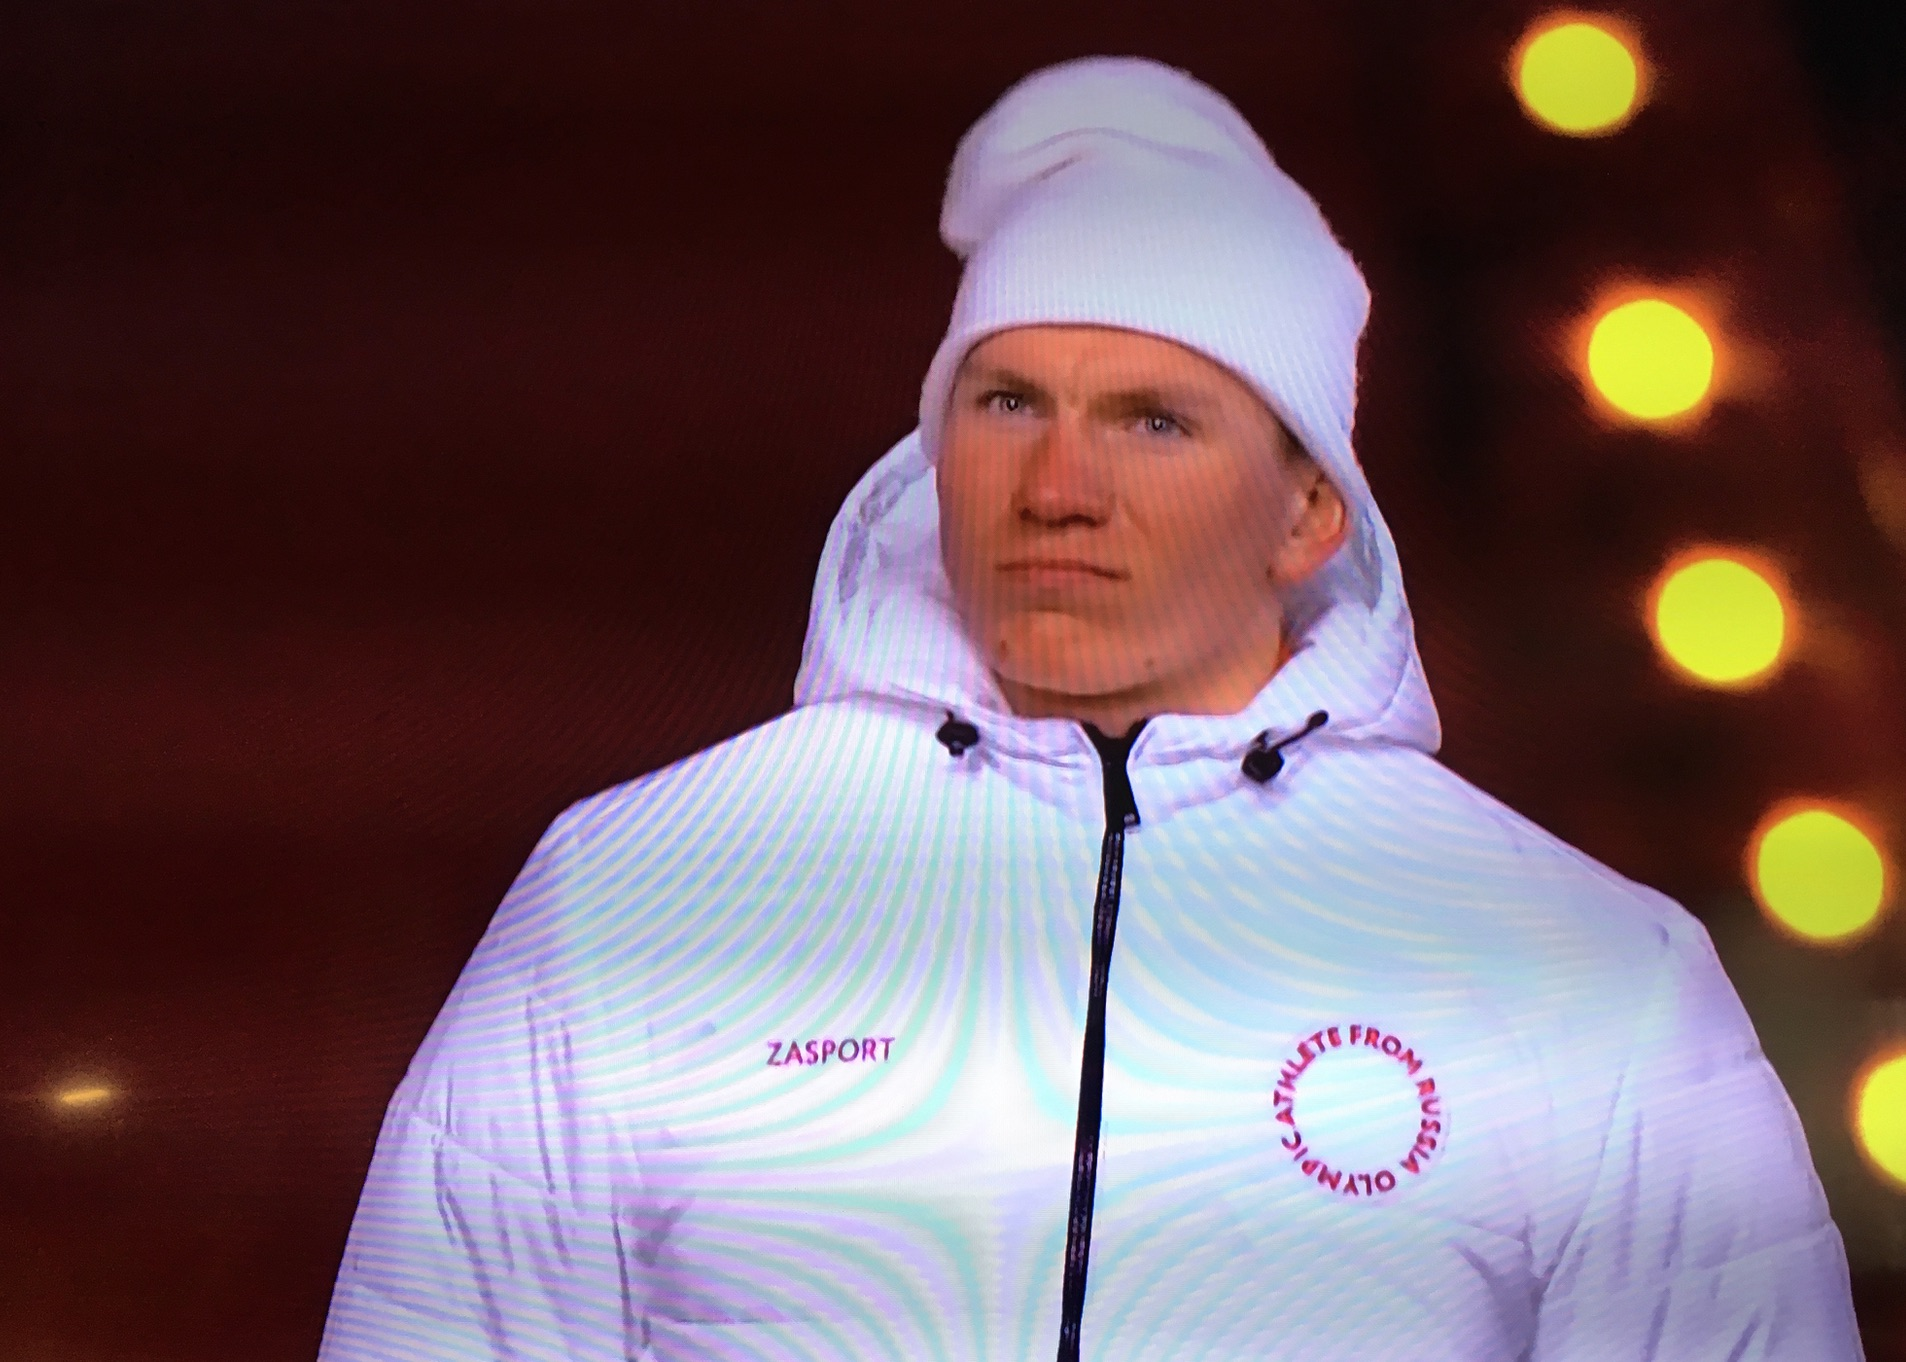 Olympic Athlete from Russia Team Smurf PyeongChang